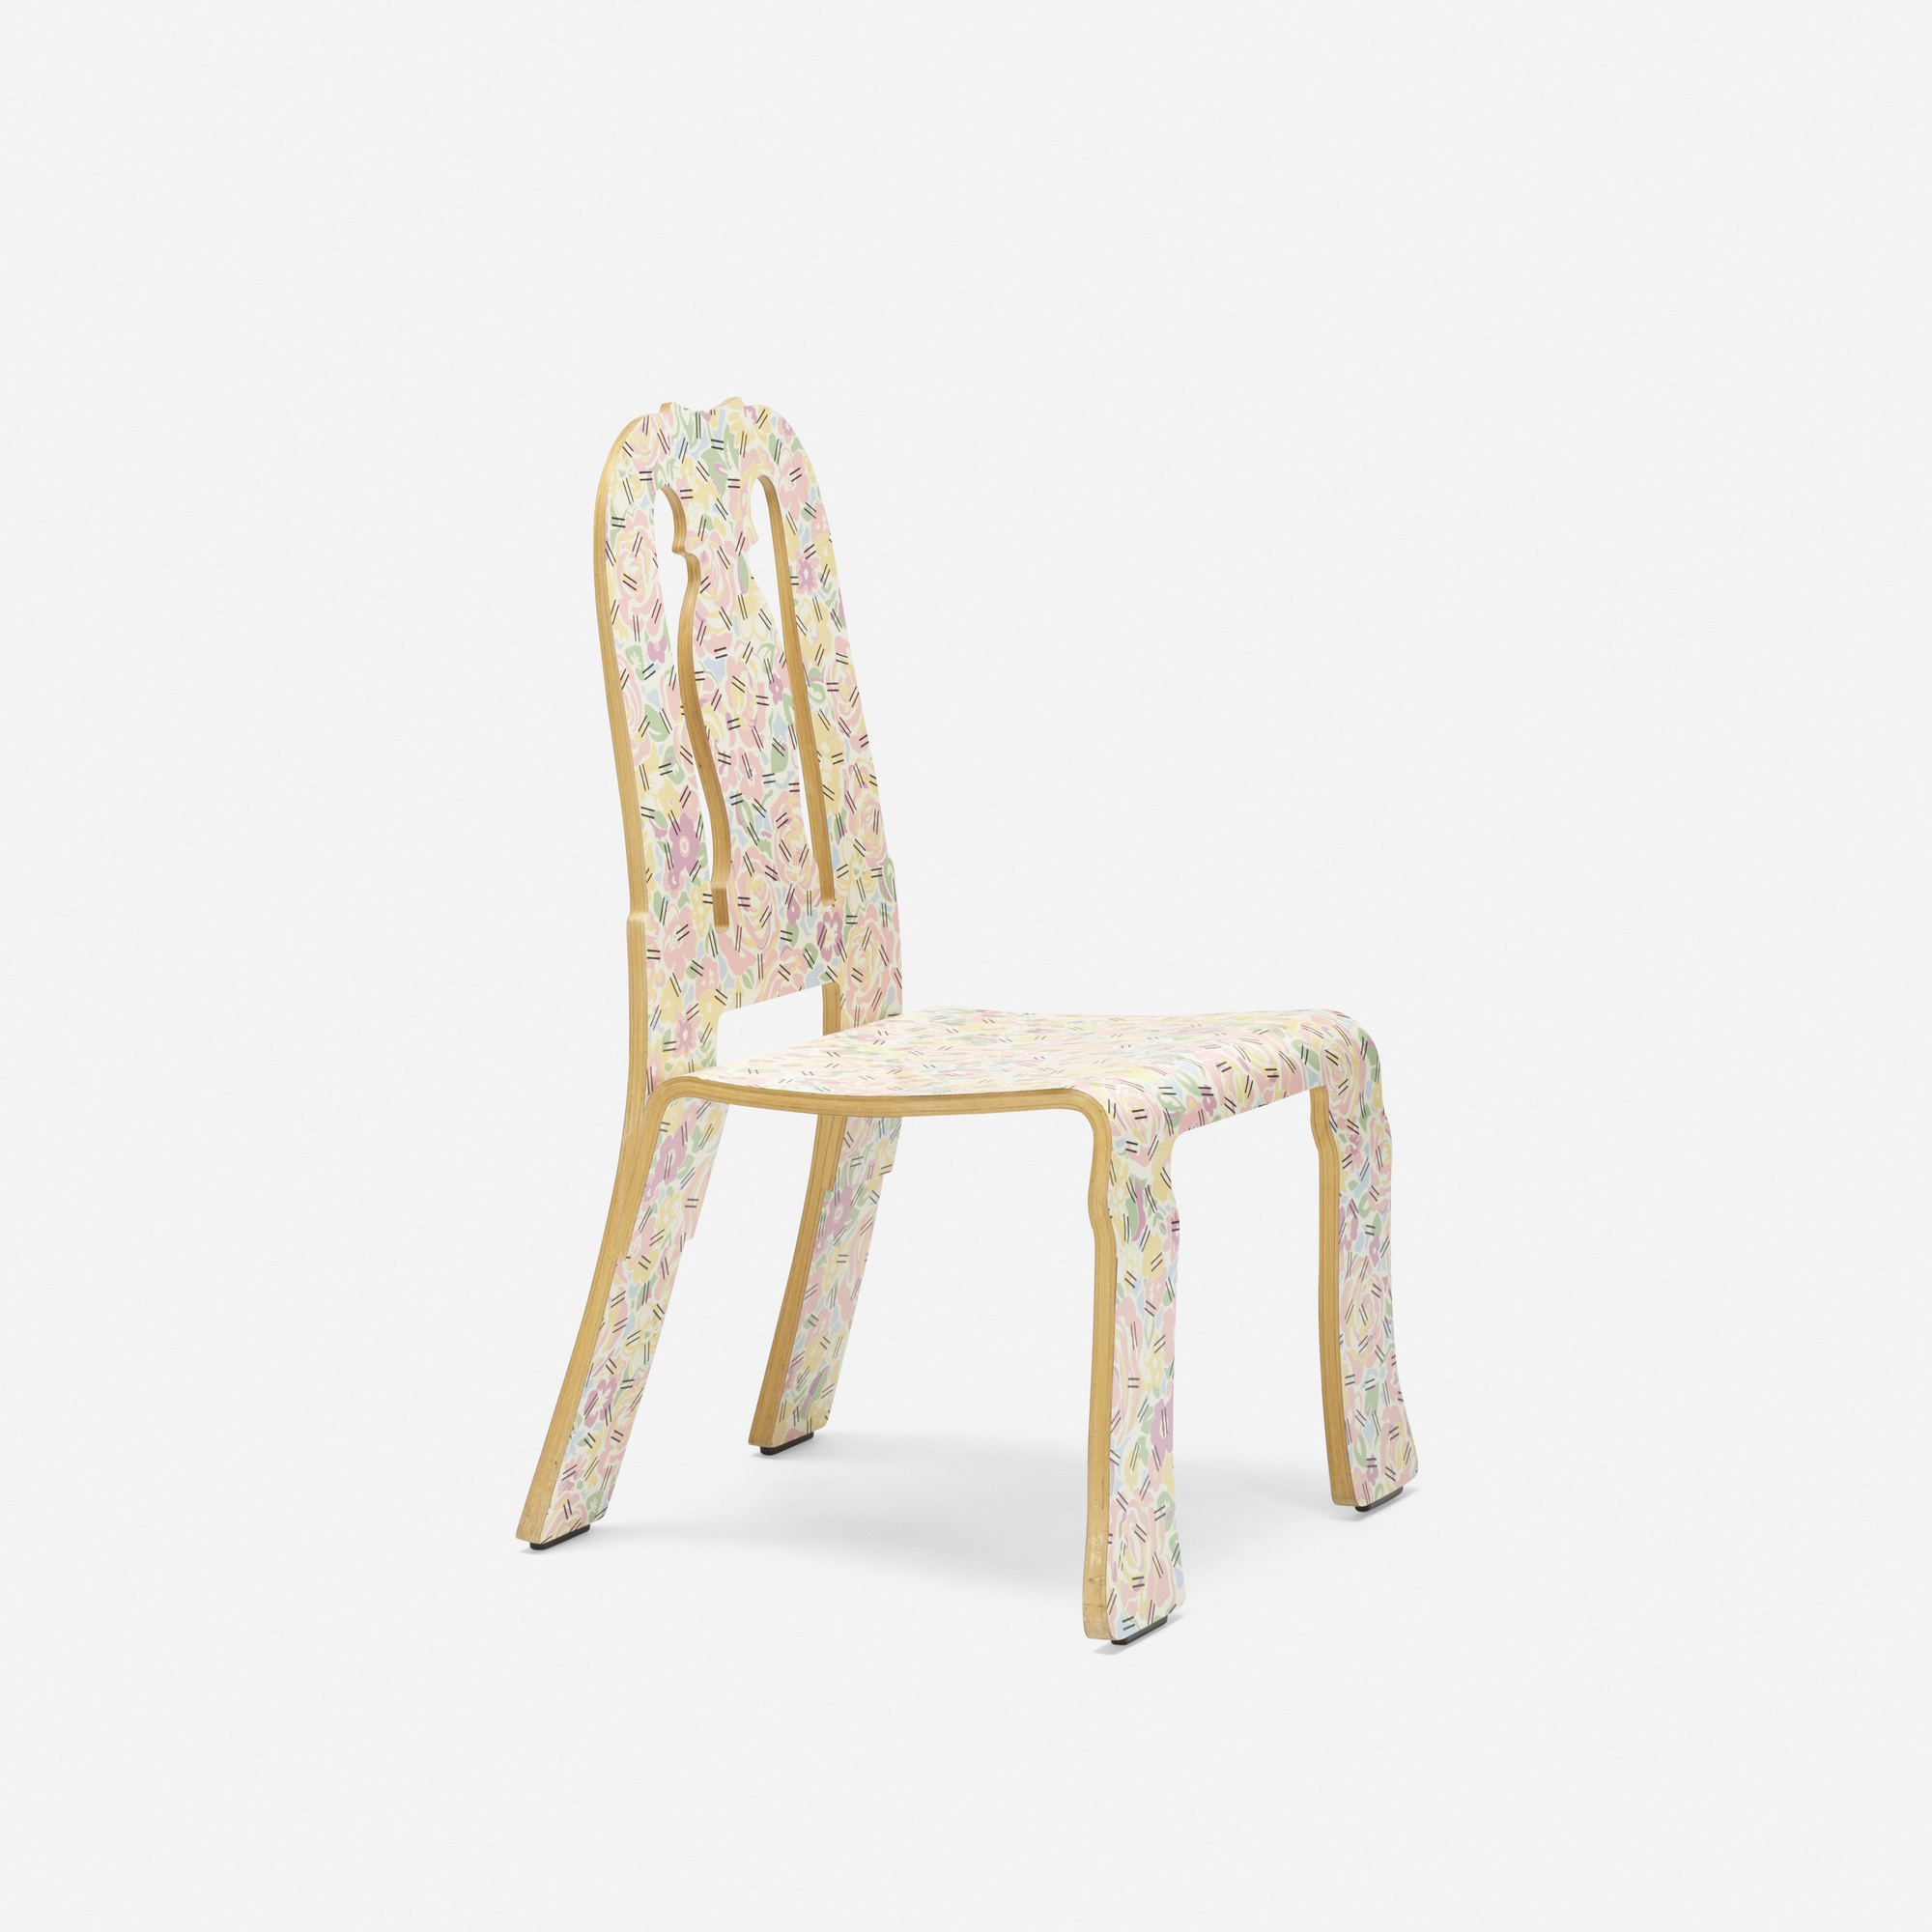 265 Robert Venturi Queen Anne chair Art Design 29